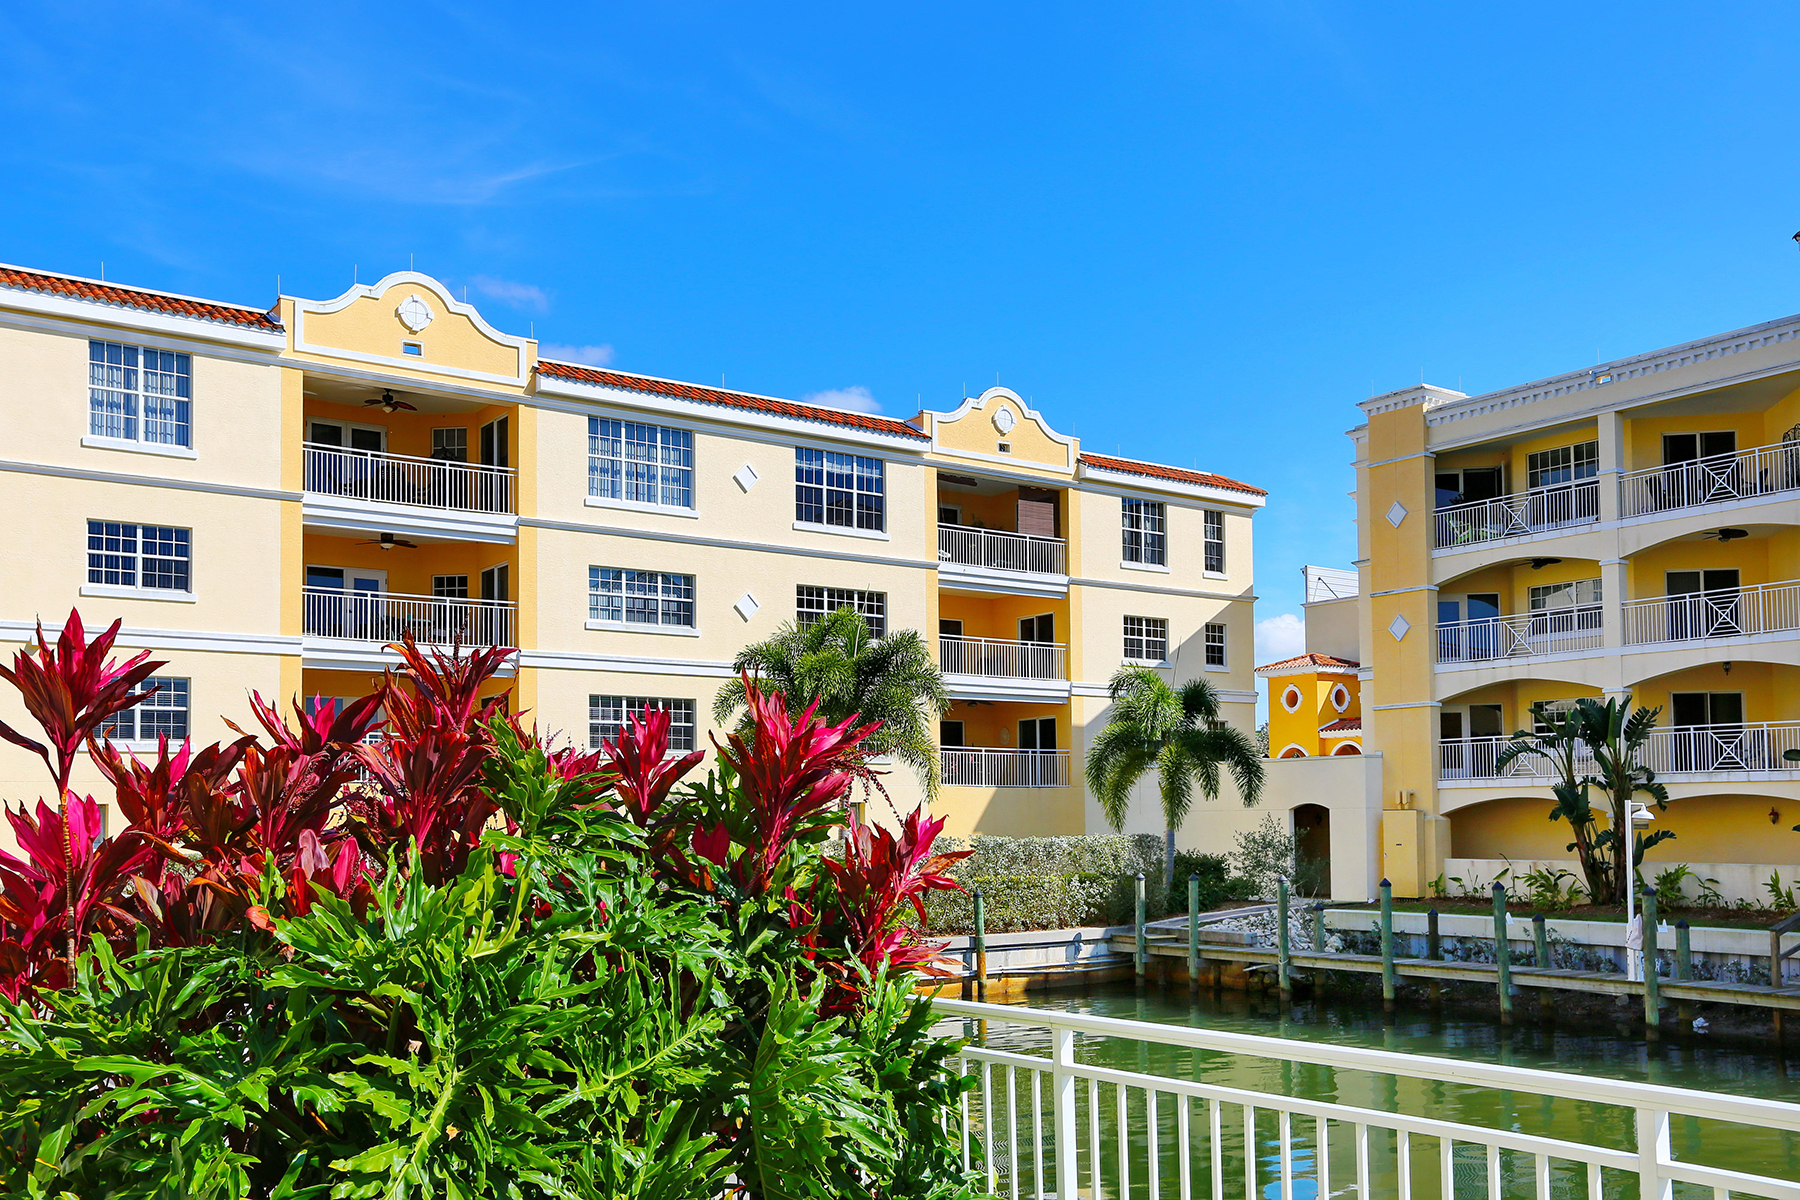 Condominio per Vendita alle ore THE VILLAS AT OSPREY HARBOR 14041 Bellagio Way 315 Osprey, Florida, 34229 Stati Uniti